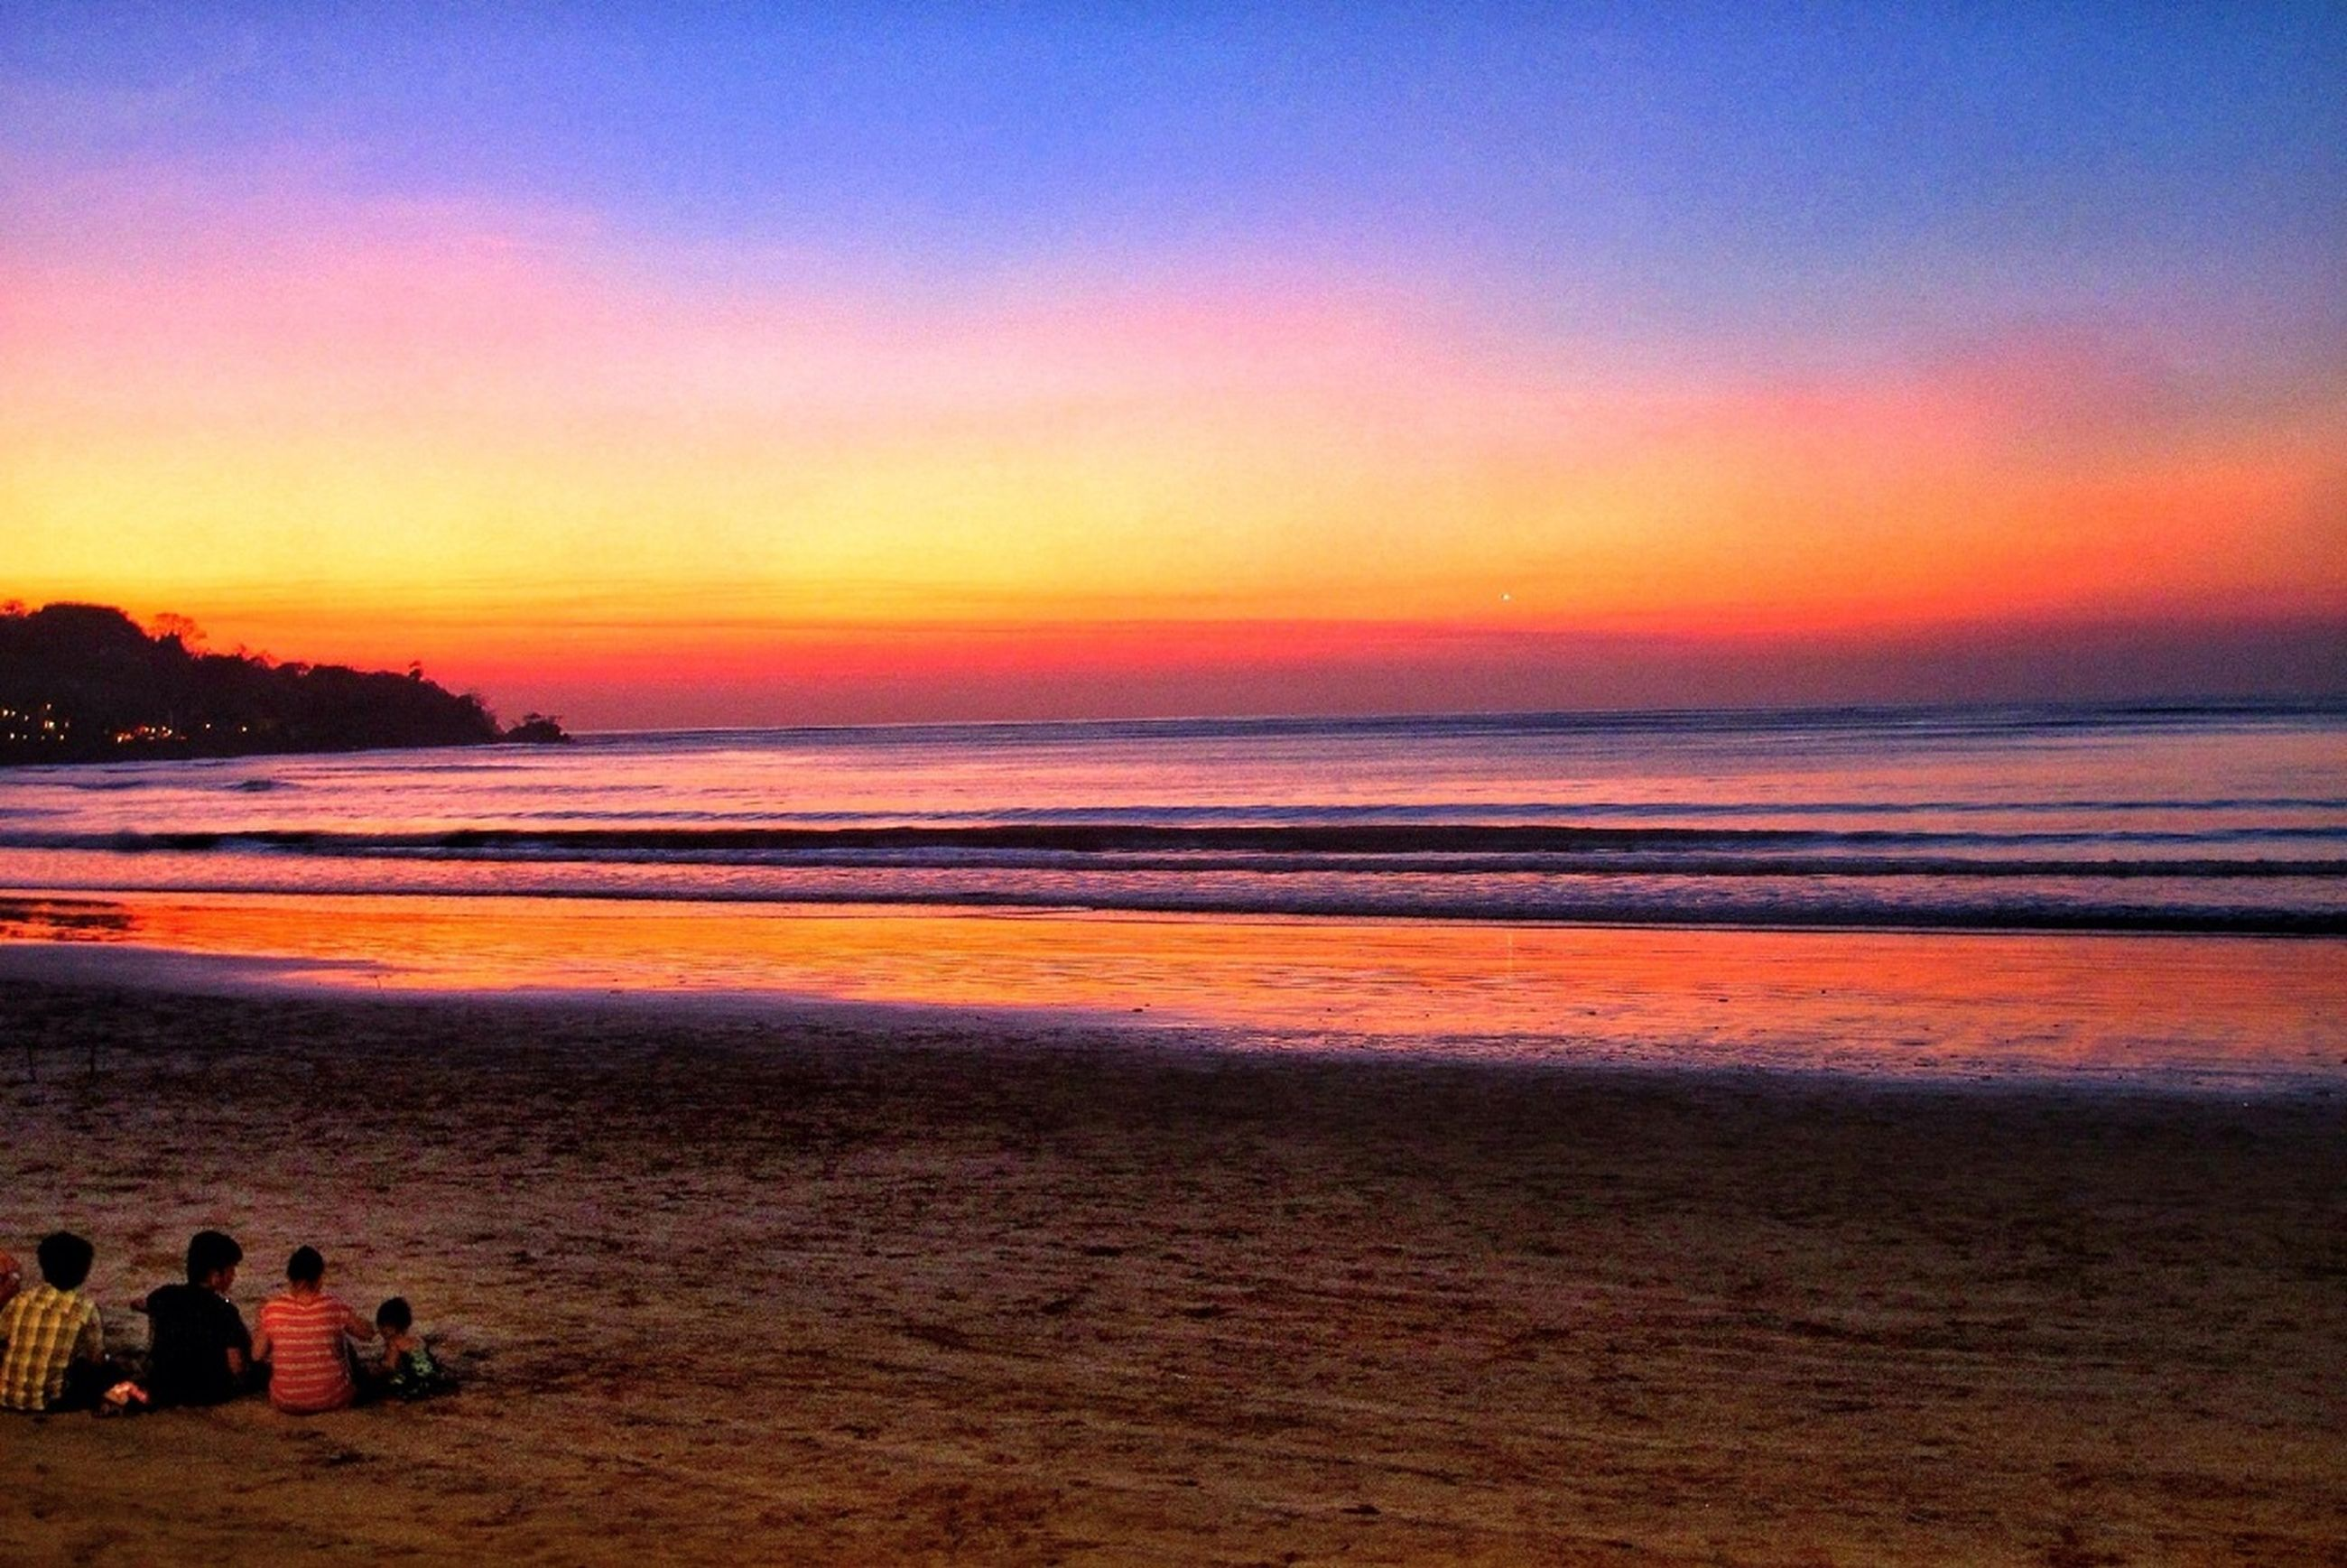 sea, beach, sunset, water, horizon over water, scenics, shore, tranquil scene, beauty in nature, tranquility, sky, sand, idyllic, orange color, nature, wave, coastline, silhouette, incidental people, dusk